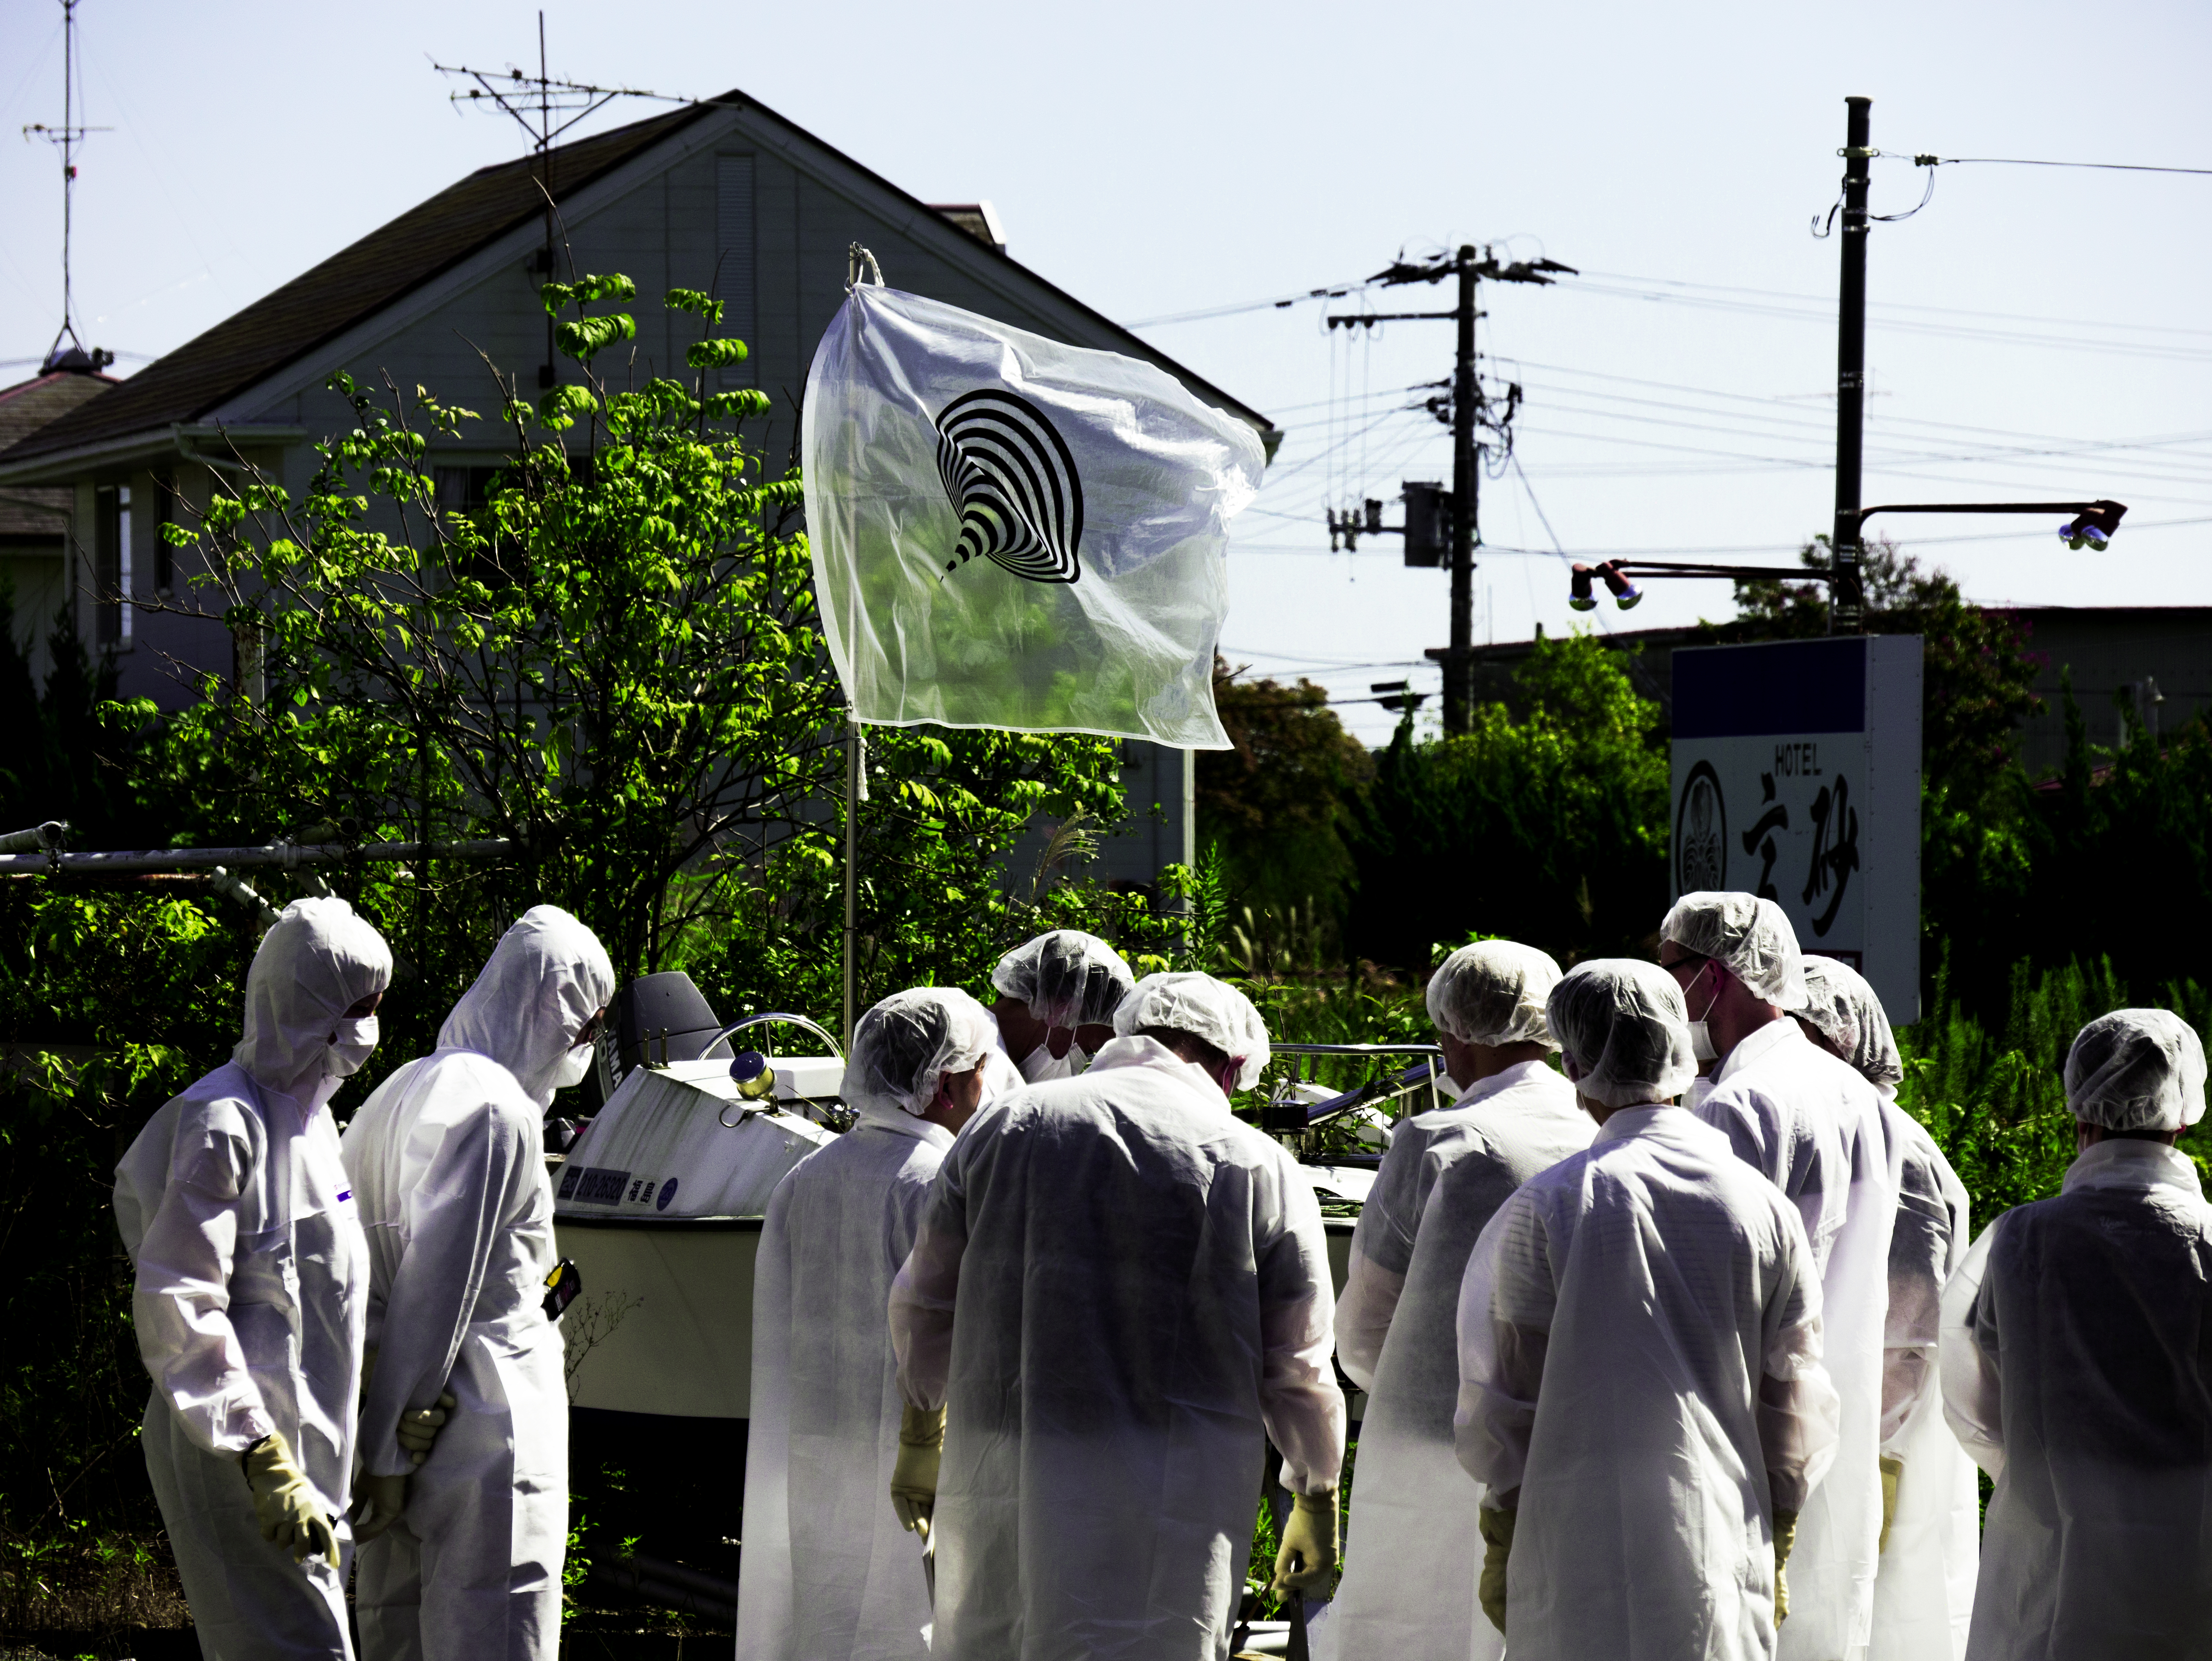 Fukushima Exclusion Zone, Japan